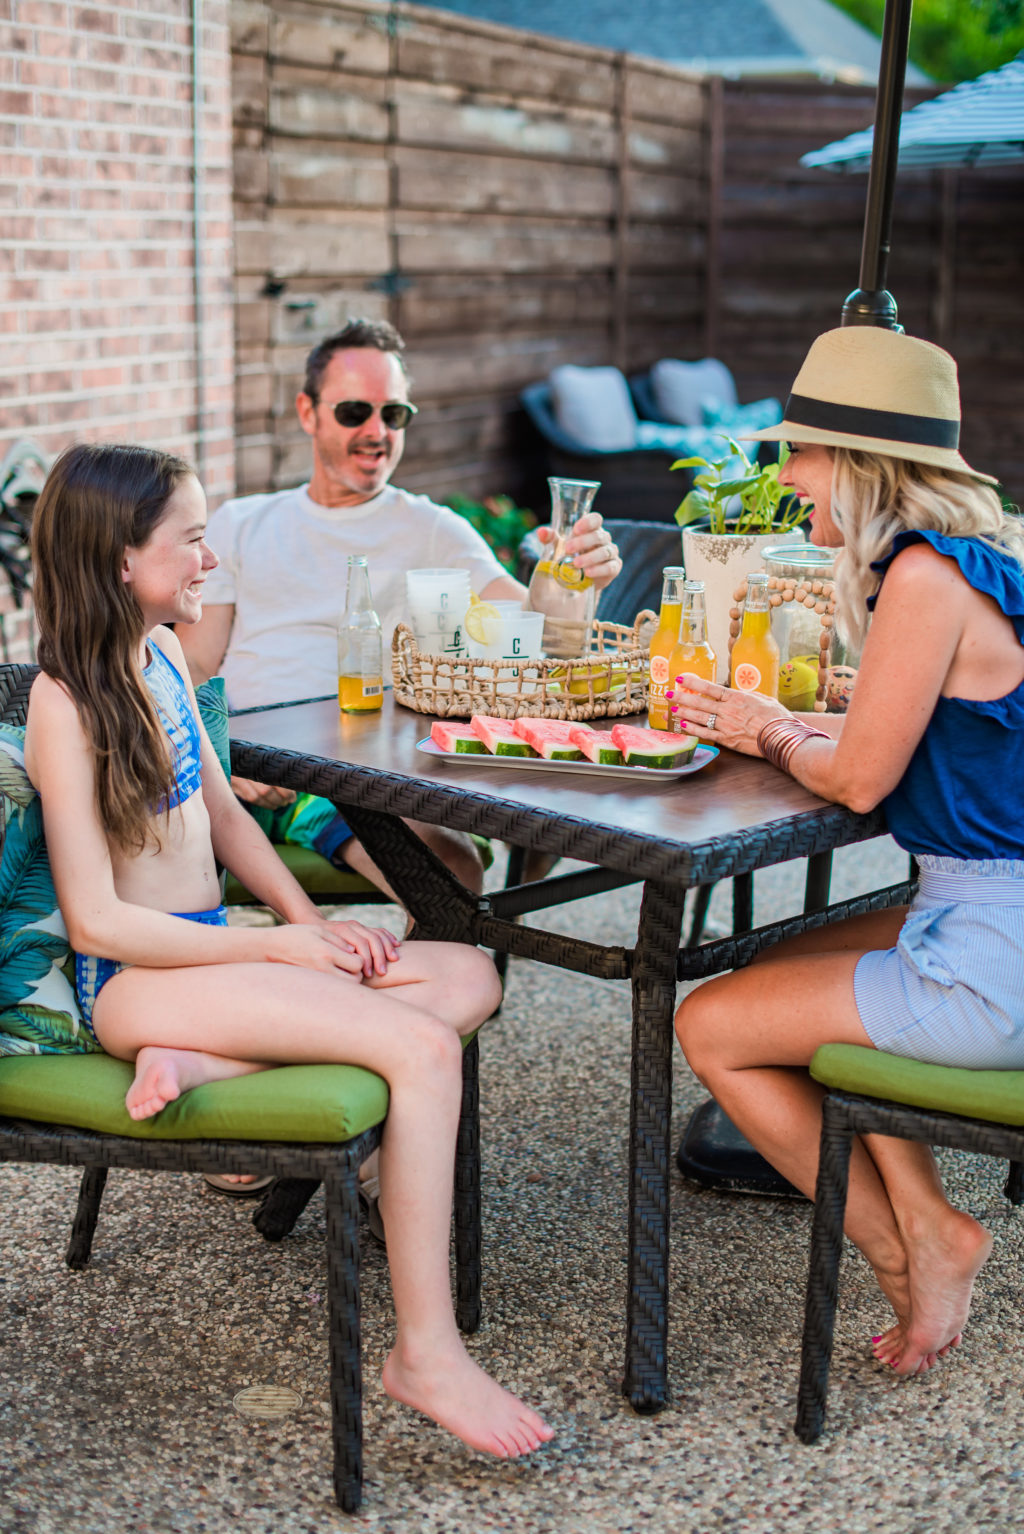 family eating watermelon on backyard patio furniture by pool